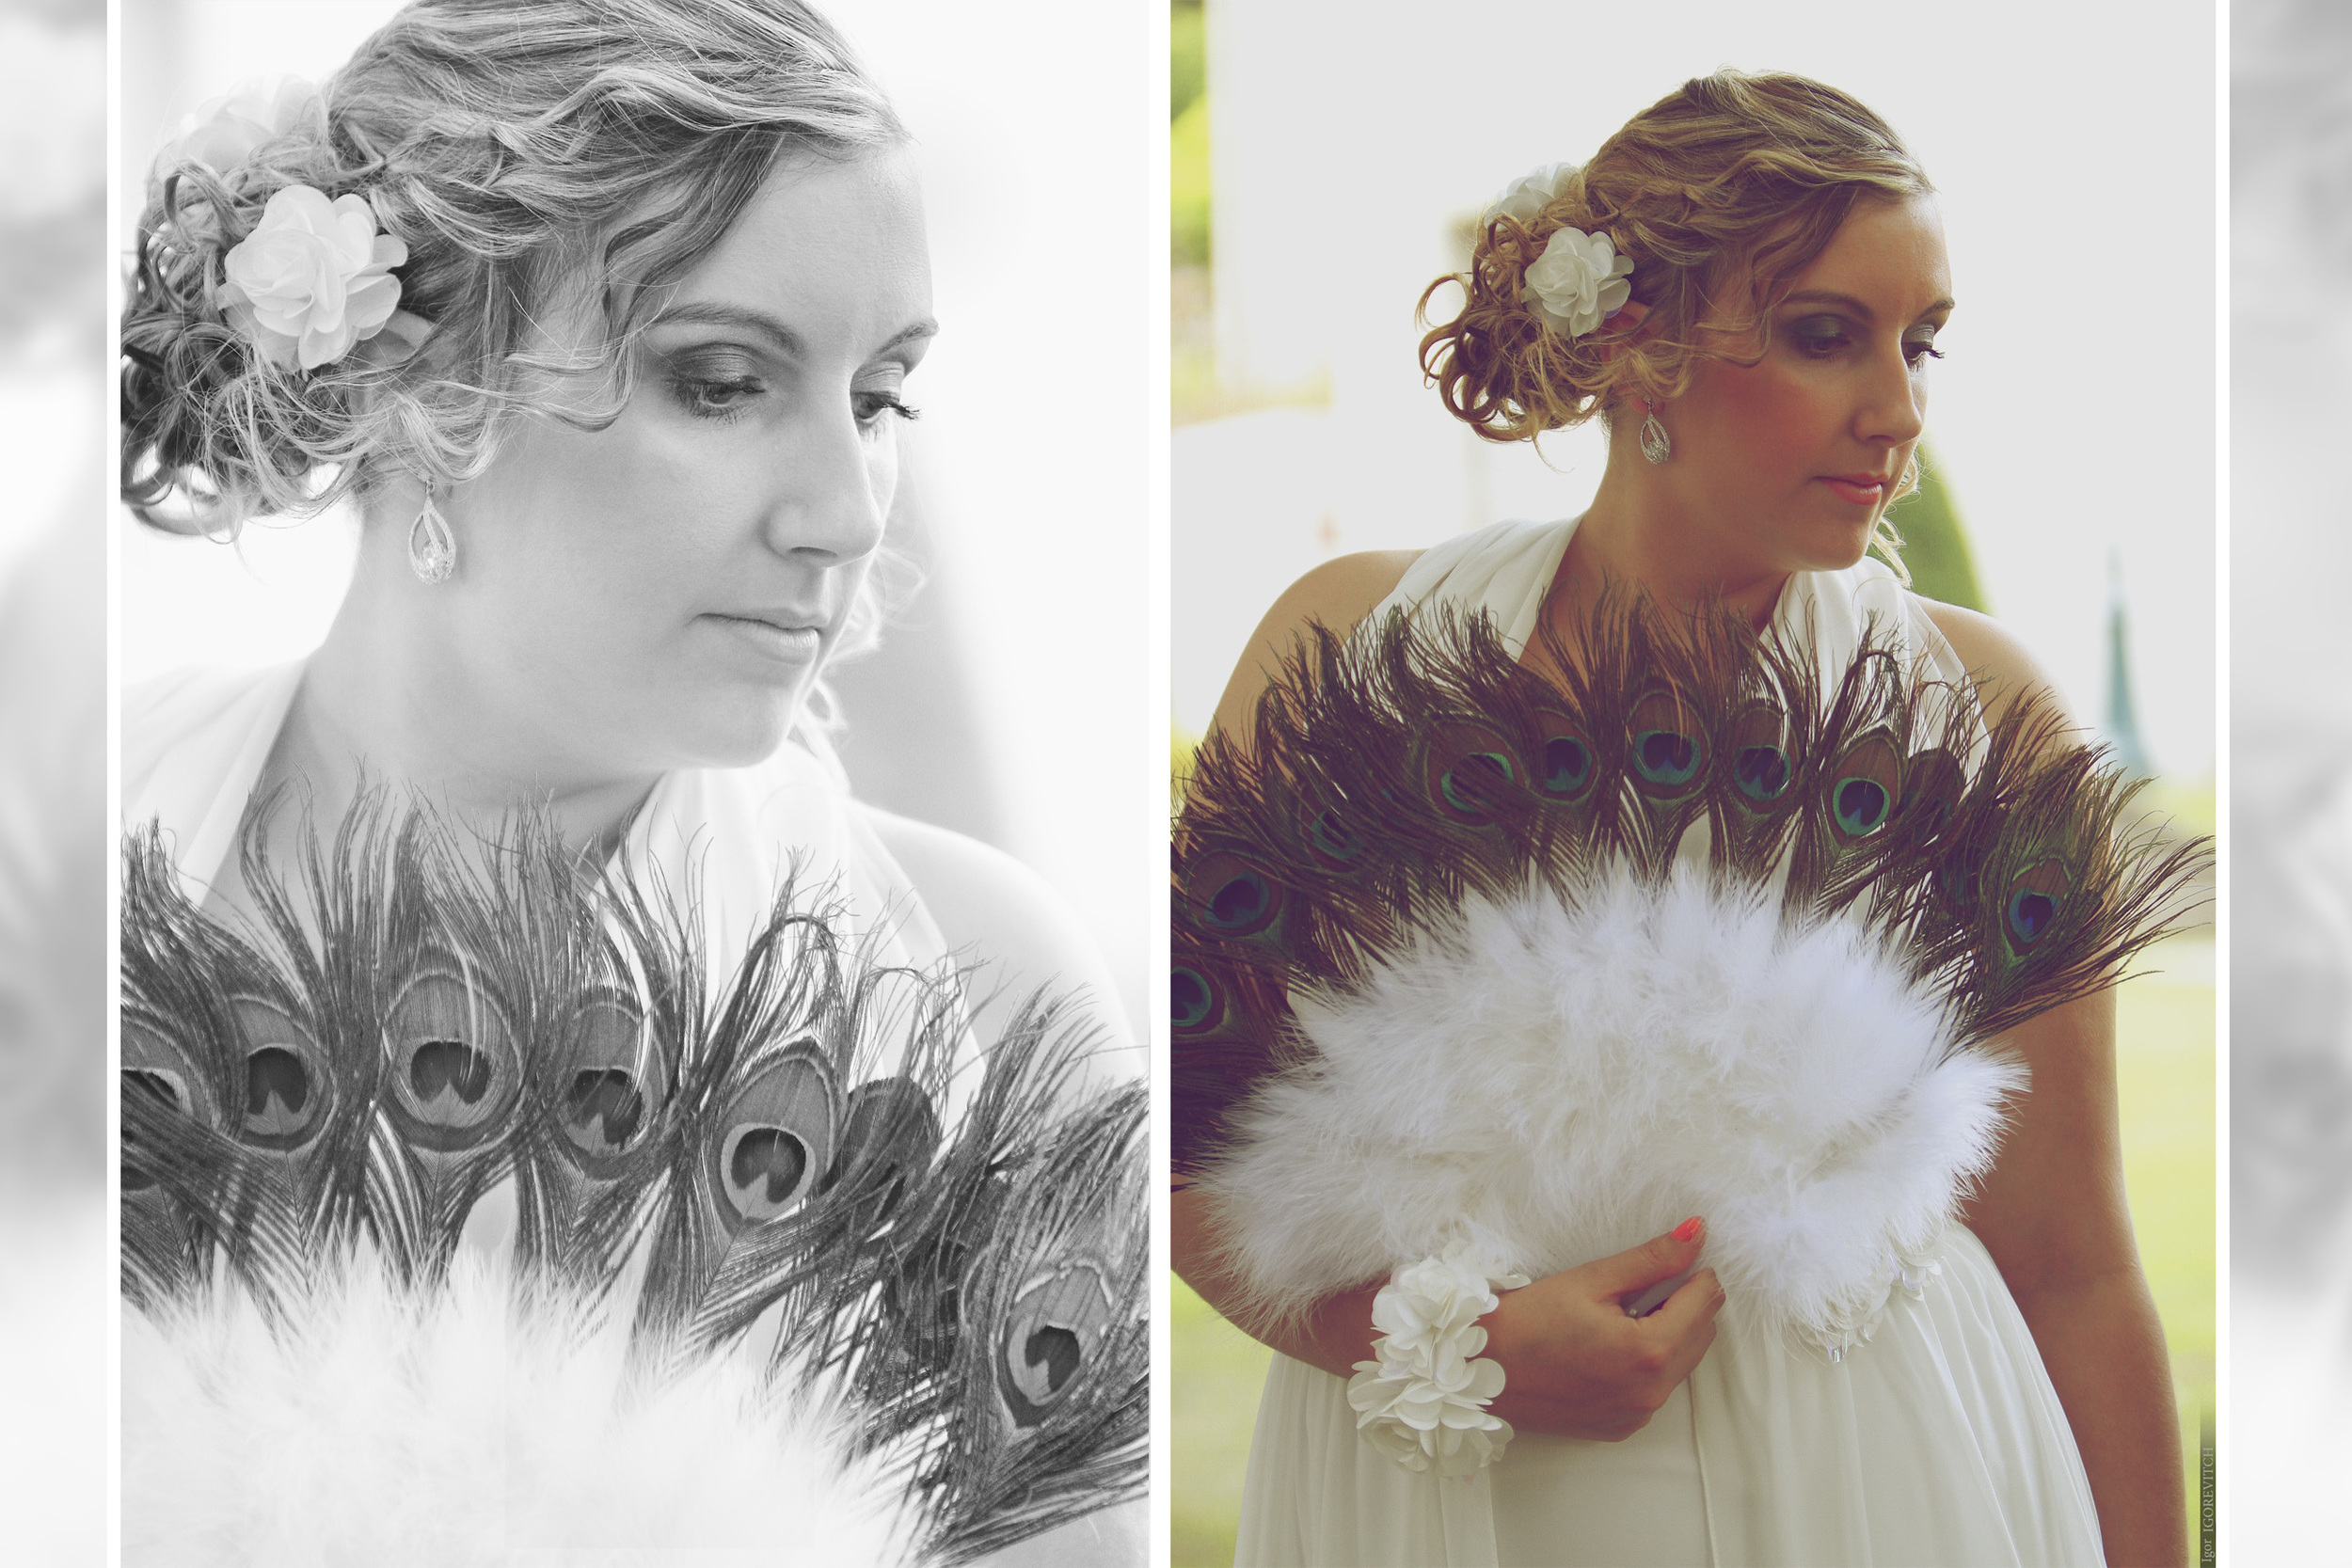 photos-de-mariage-ephemere-chic-chique-www.igosta.com_